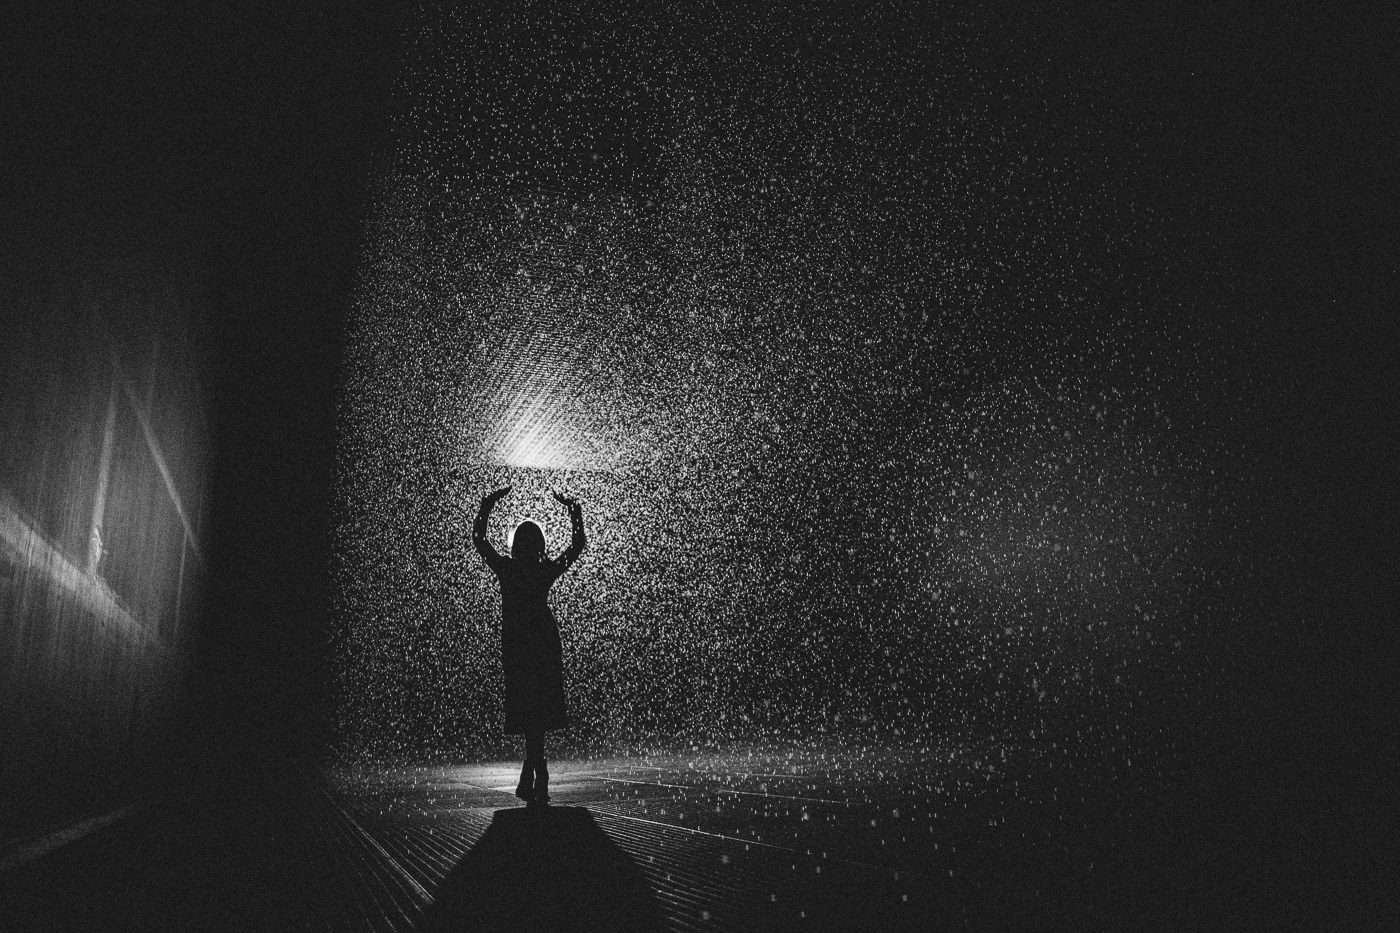 In the rain room - art installation by random international in Melbourne - by Jackalope